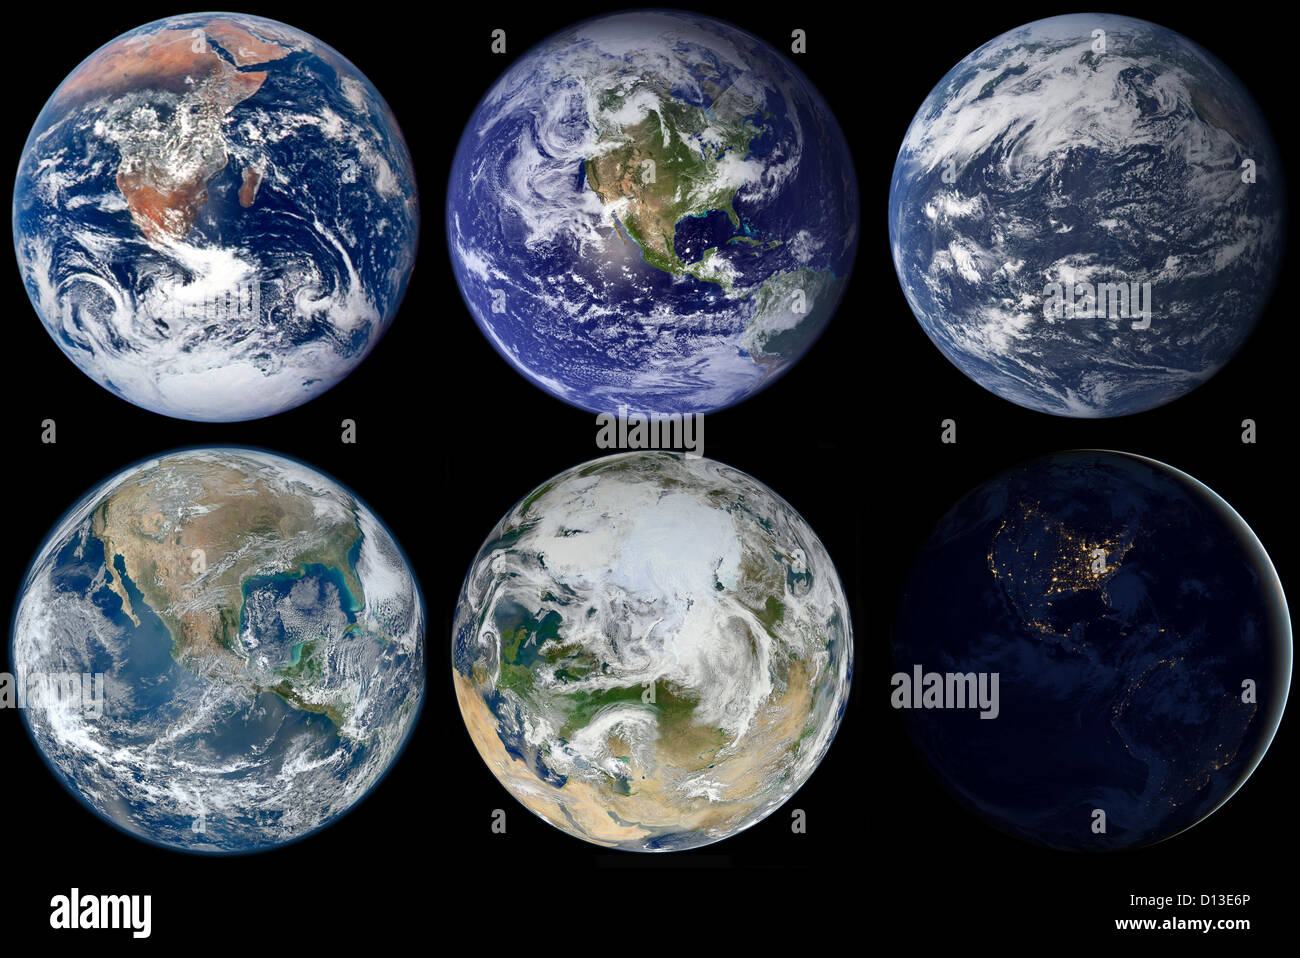 Composite image showing a variety of views of earth from space top composite image showing a variety of views of earth from space top row left to right blue marble 1972 blue marble 2002 aqua marble 2005 publicscrutiny Image collections